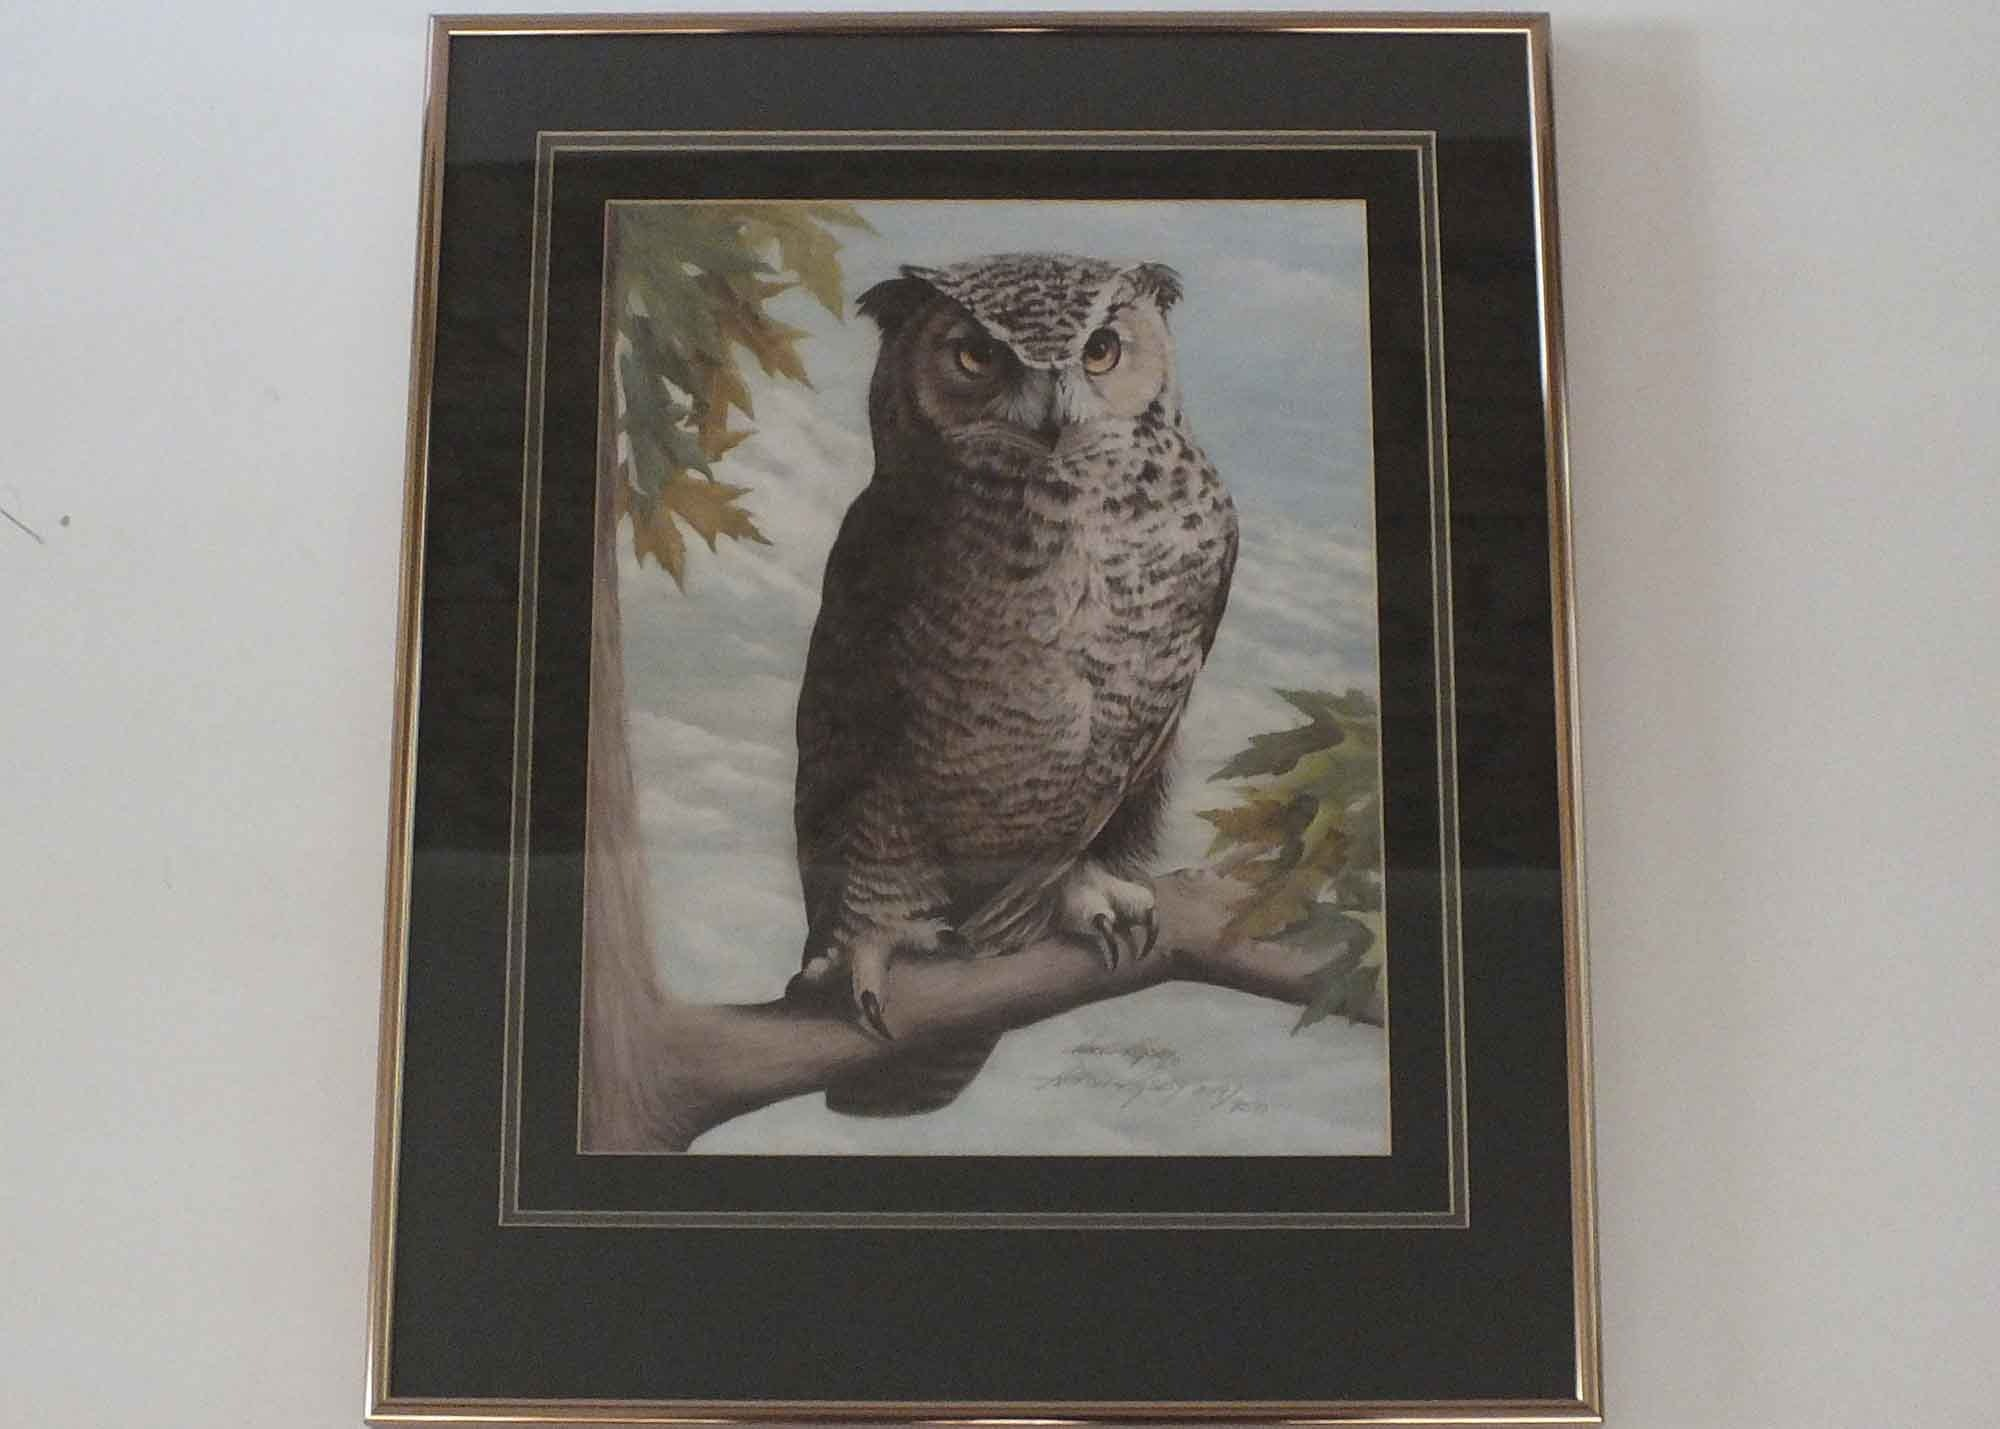 Vintage Art Prints Art Print Auctions Lithographs For